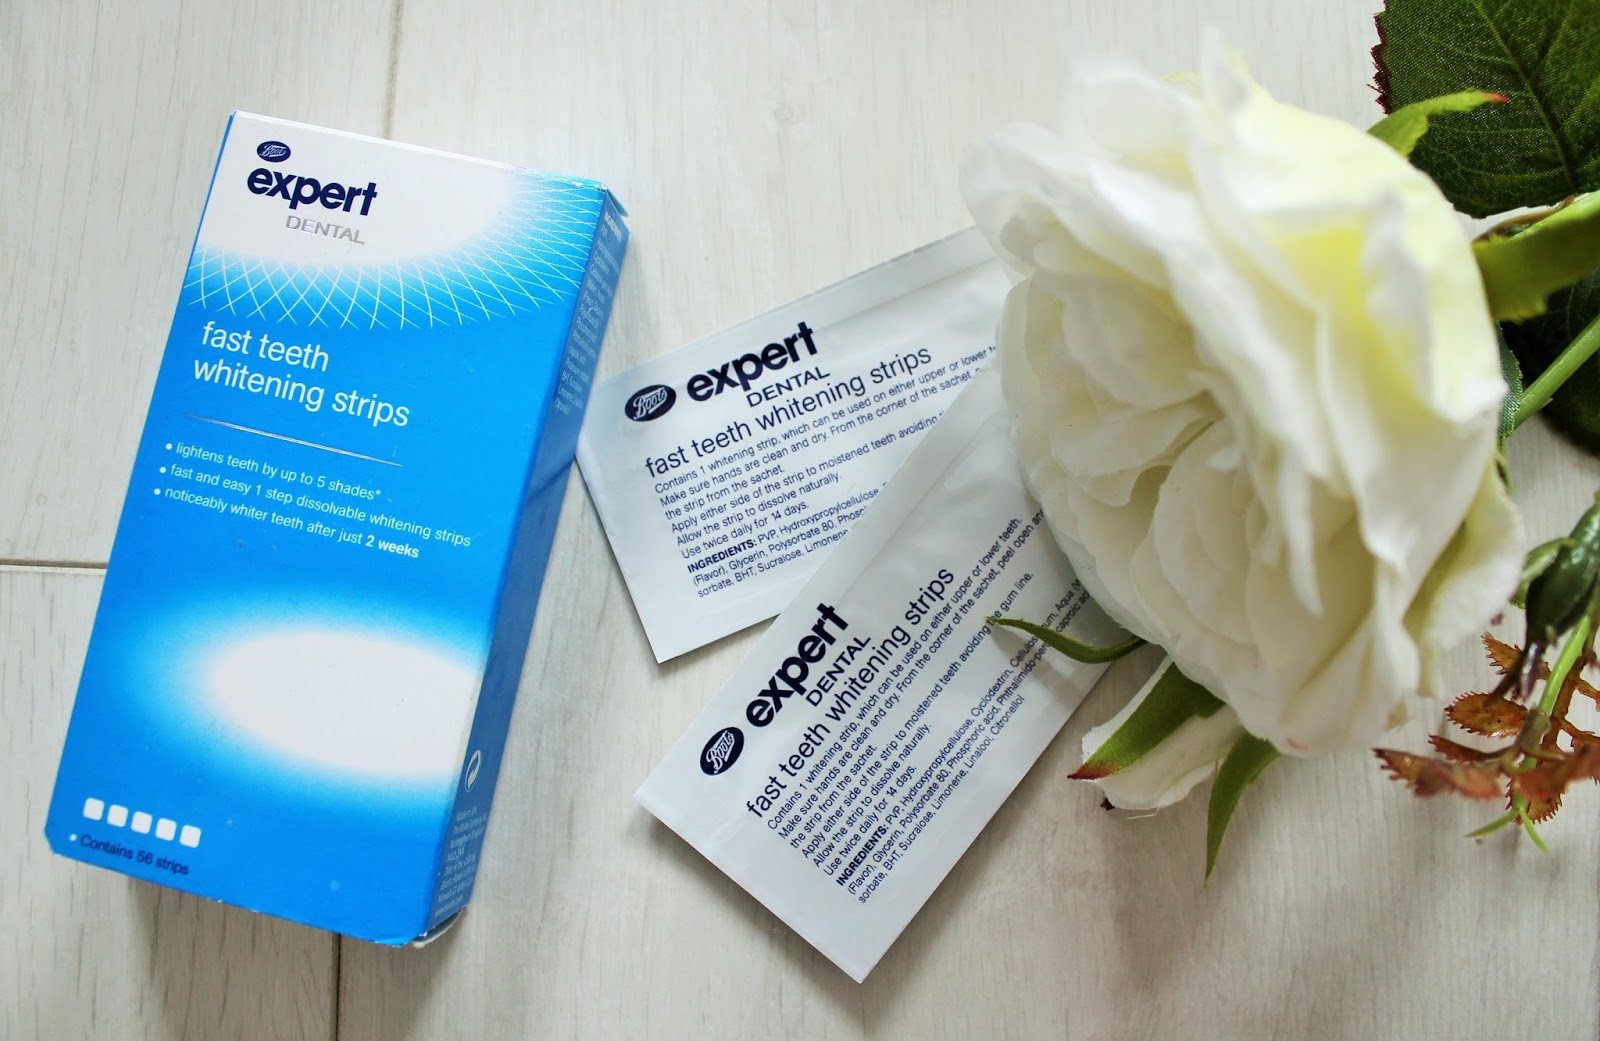 Budget Friendly Tips For A Whiter Smile - 3 - Boots Expert Teeth Whitening Strips